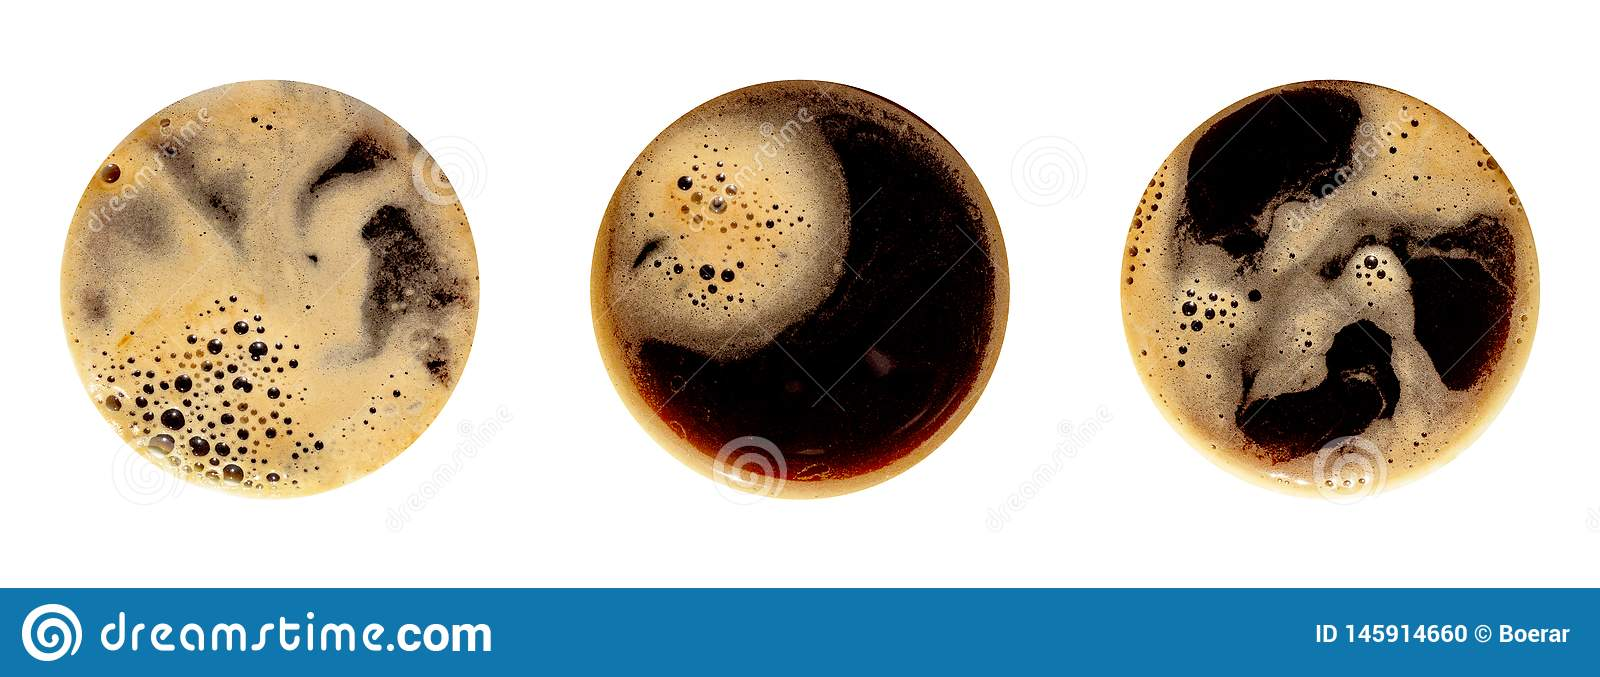 Coffee foam isolated on white background. Round top view close up photography of cup